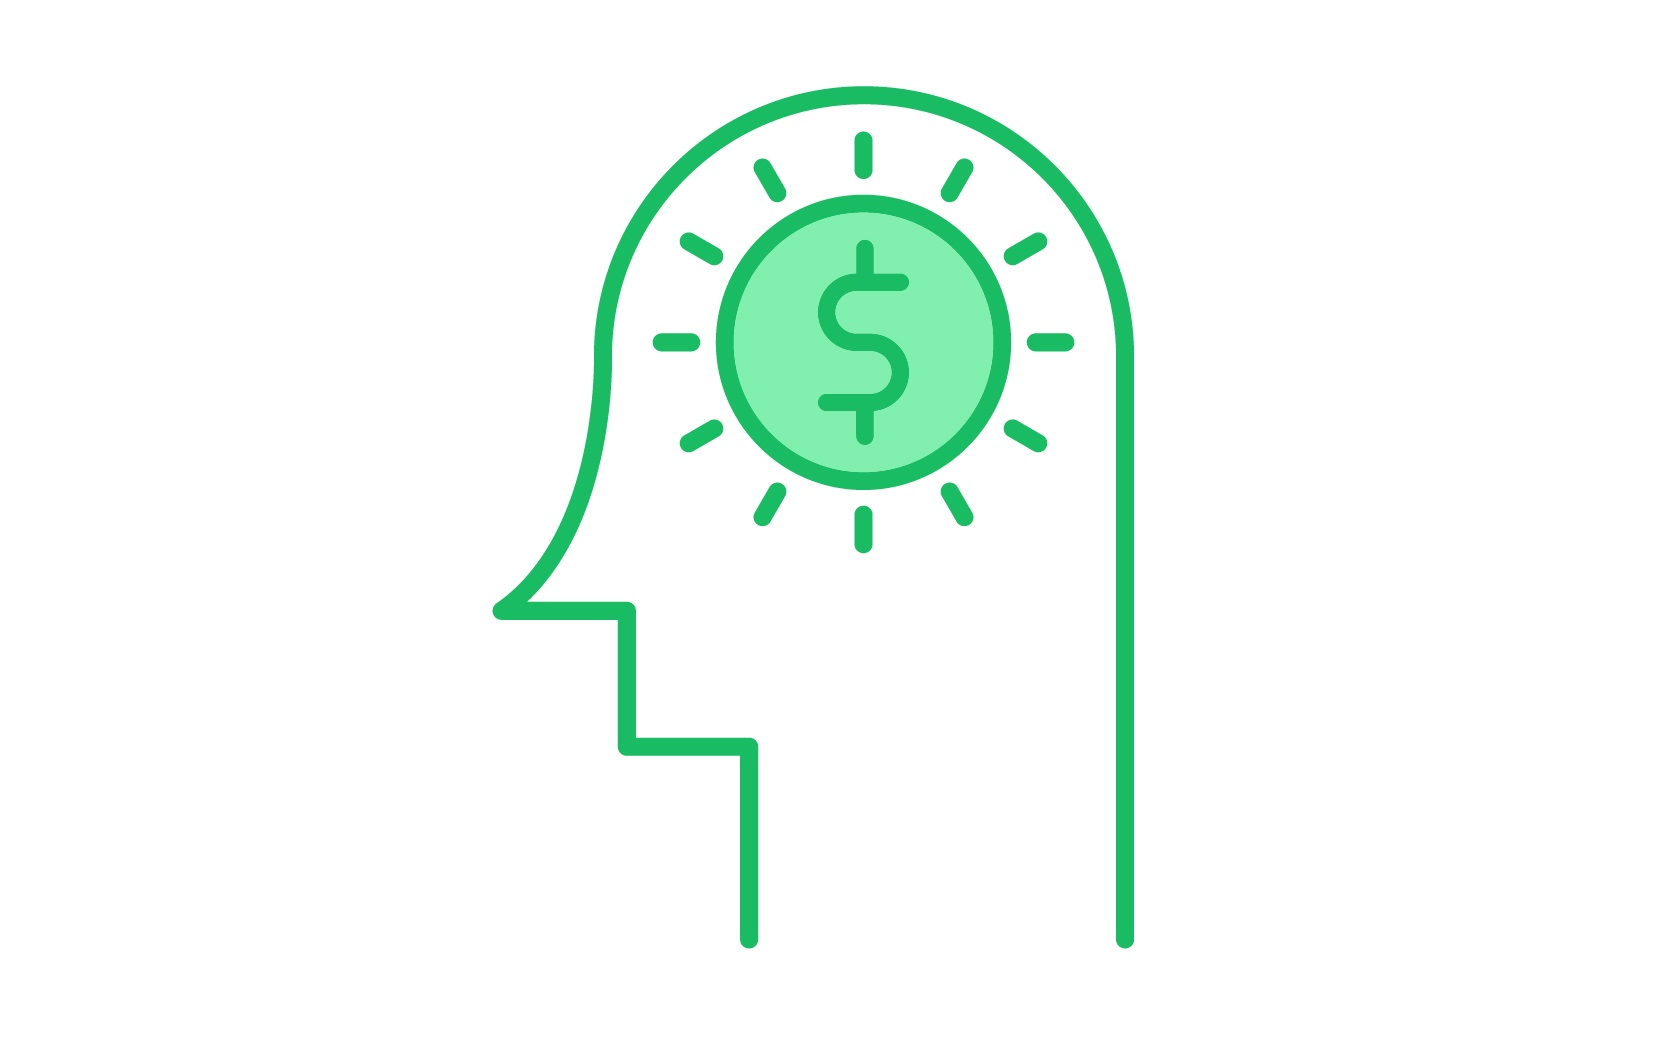 Download Free Investment Idea Icon Graphic By Back1design1 Creative Fabrica for Cricut Explore, Silhouette and other cutting machines.